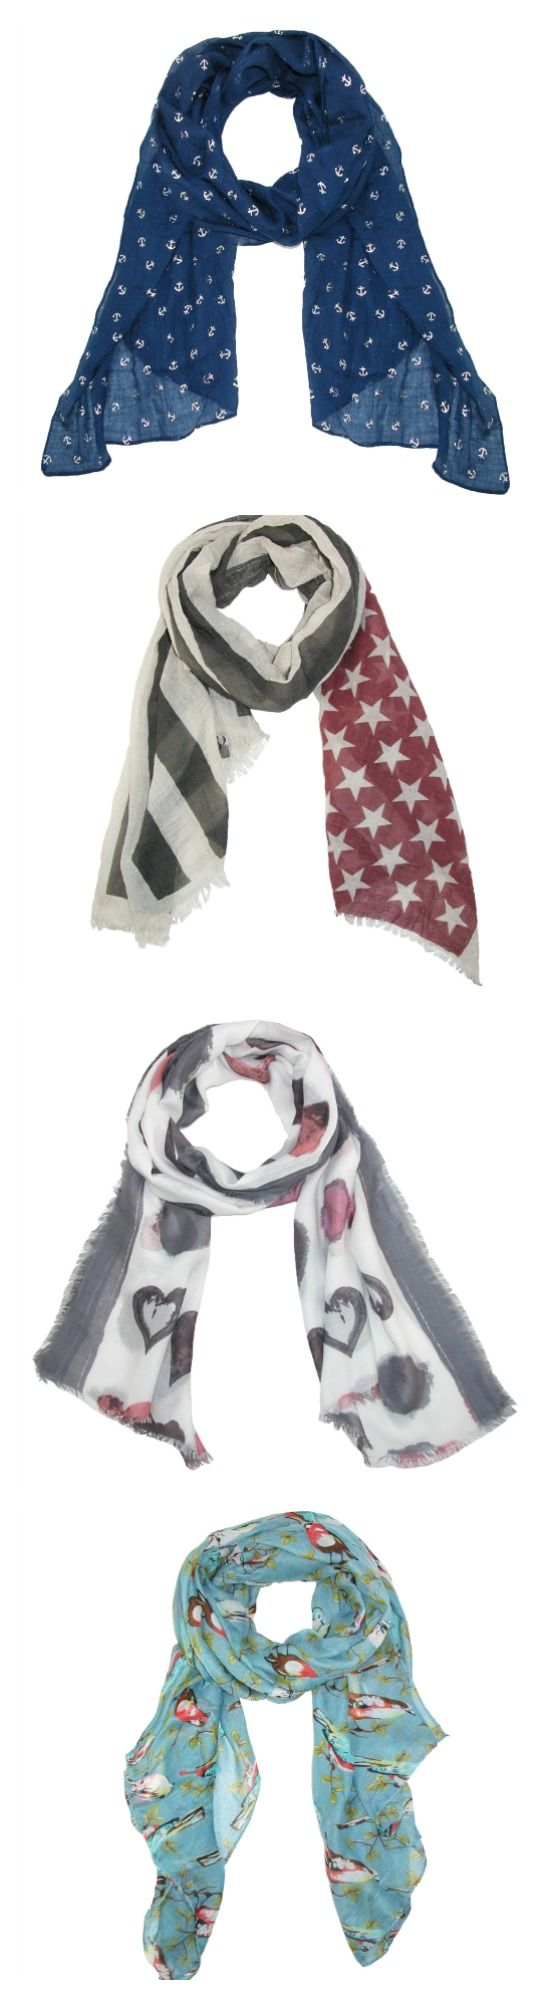 Our new spring scarves are in! Add to your spring wardrobe without breaking the bank with these adorable patterned scarves. More styles and colors available!